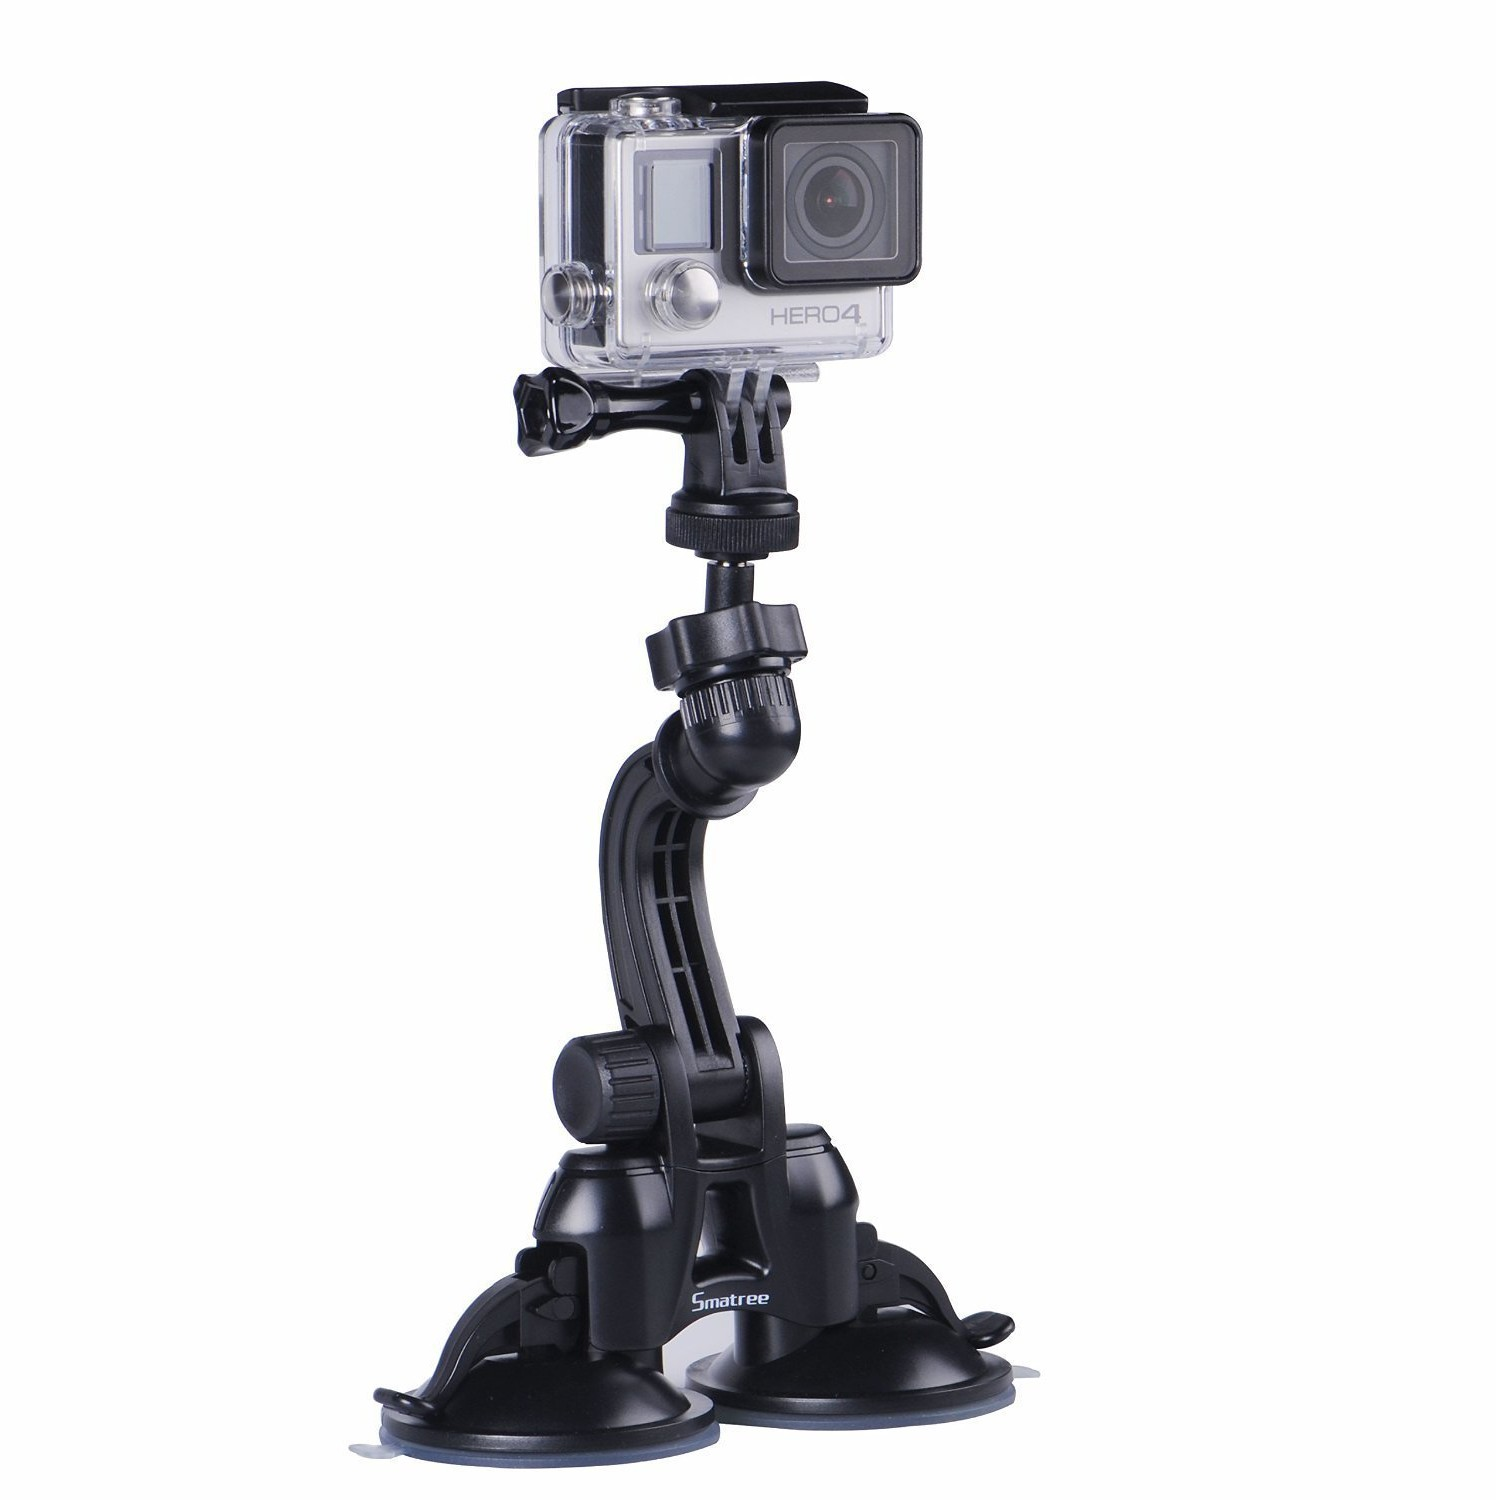 Smatree Double Suction Cup Mount for Gopro 6193dp3I73L._SL1500_